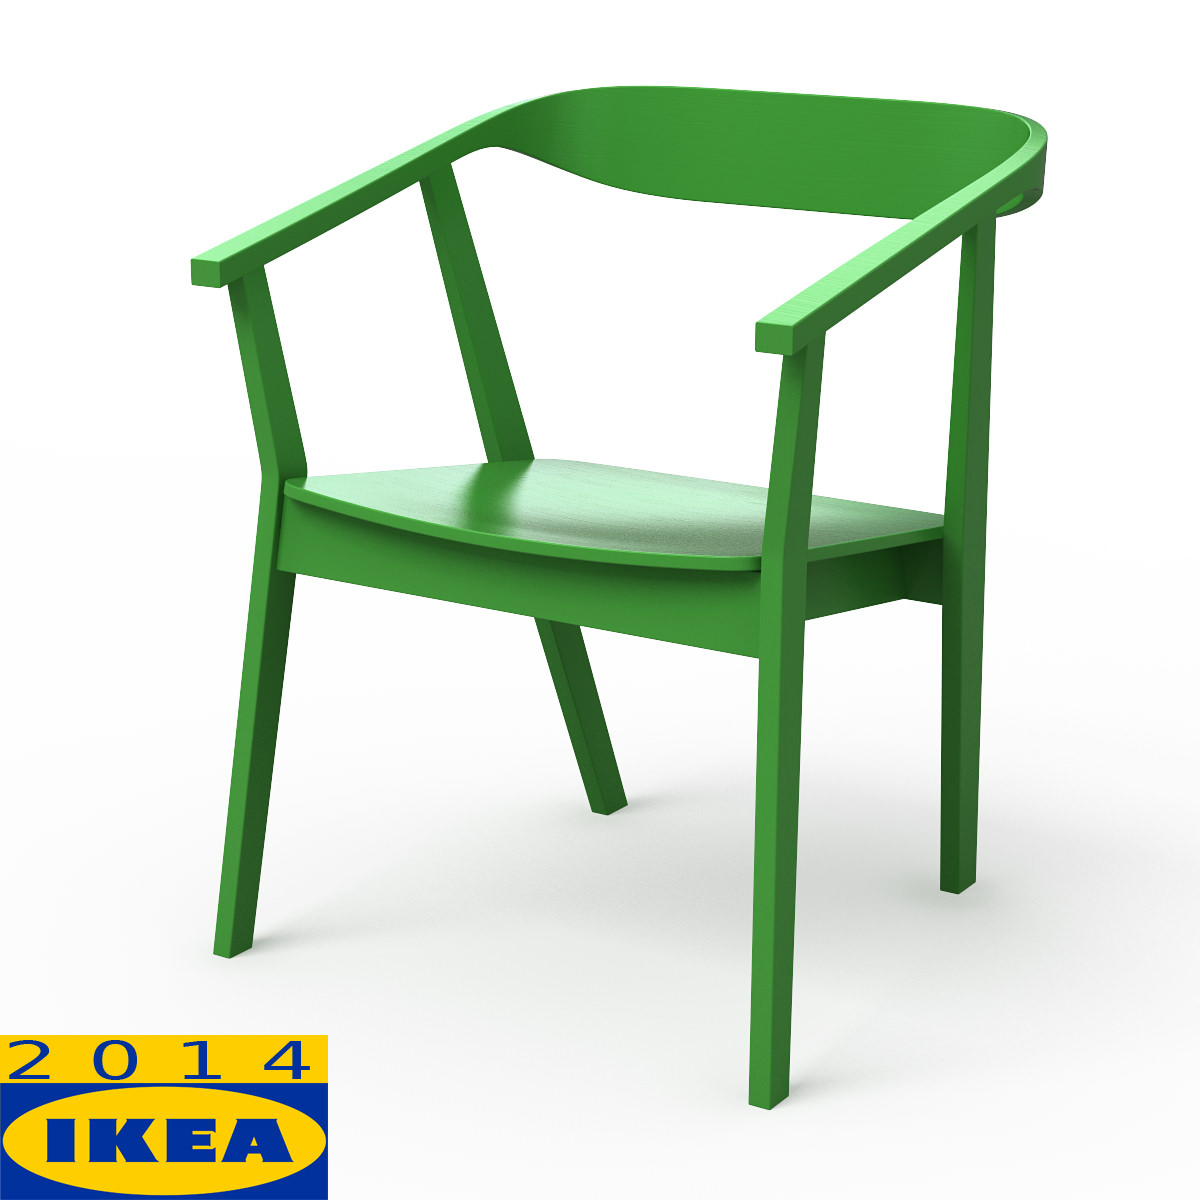 STOCKHOLM Dining Chair 3D Model Max Obj 3ds Fbx